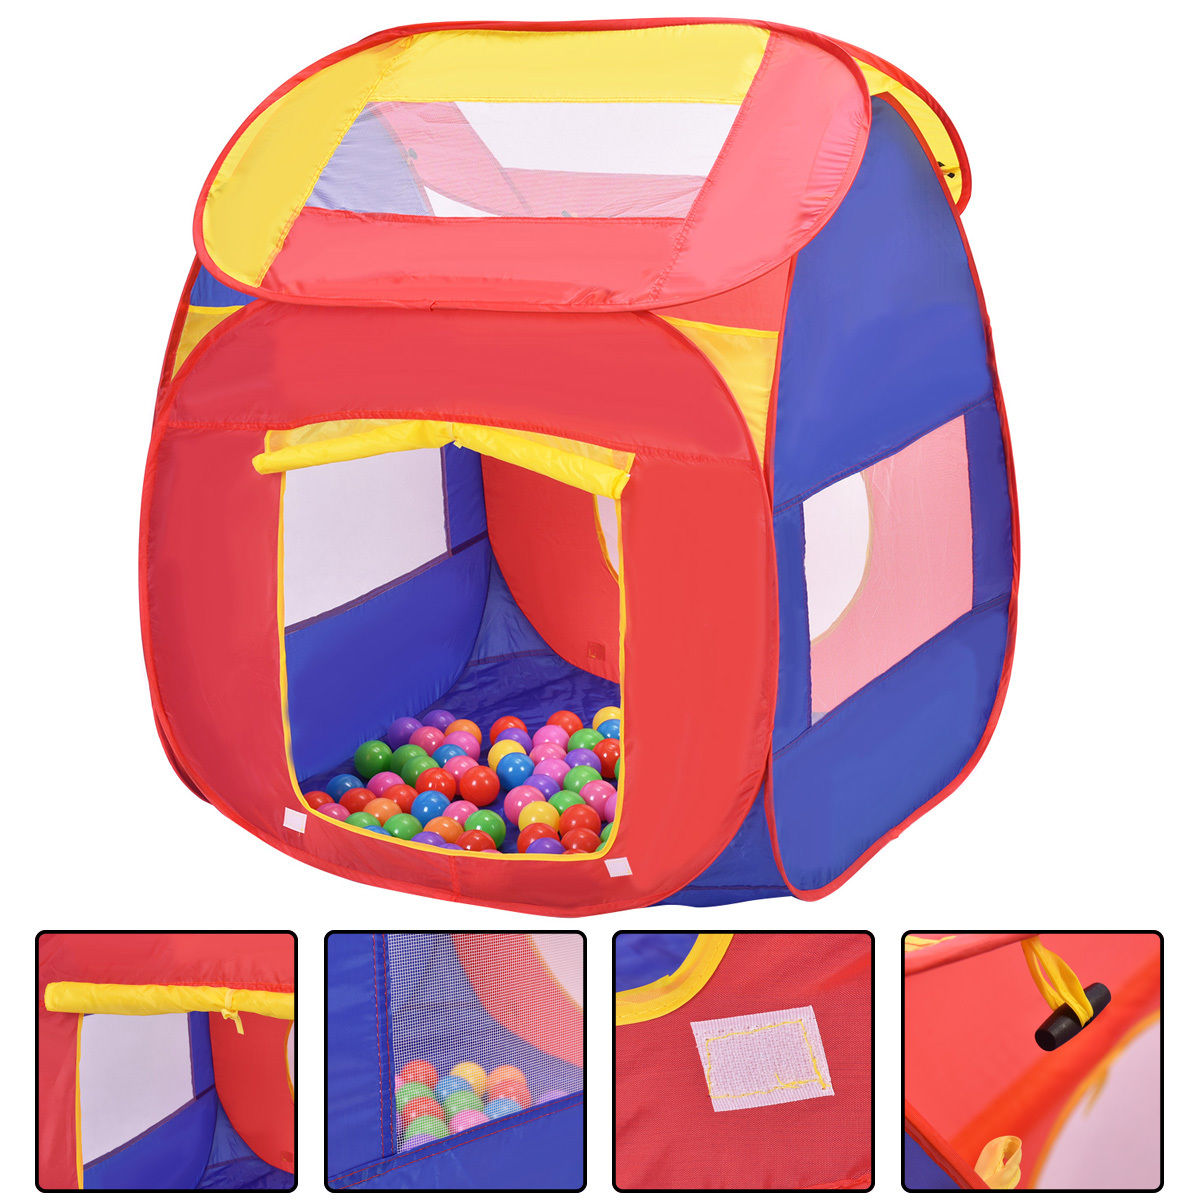 Costway Portable Kid Baby Play House Indoor Outdoor Toy Tent Game Playhut With 100 Balls  sc 1 st  Walmart : baby tent - memphite.com